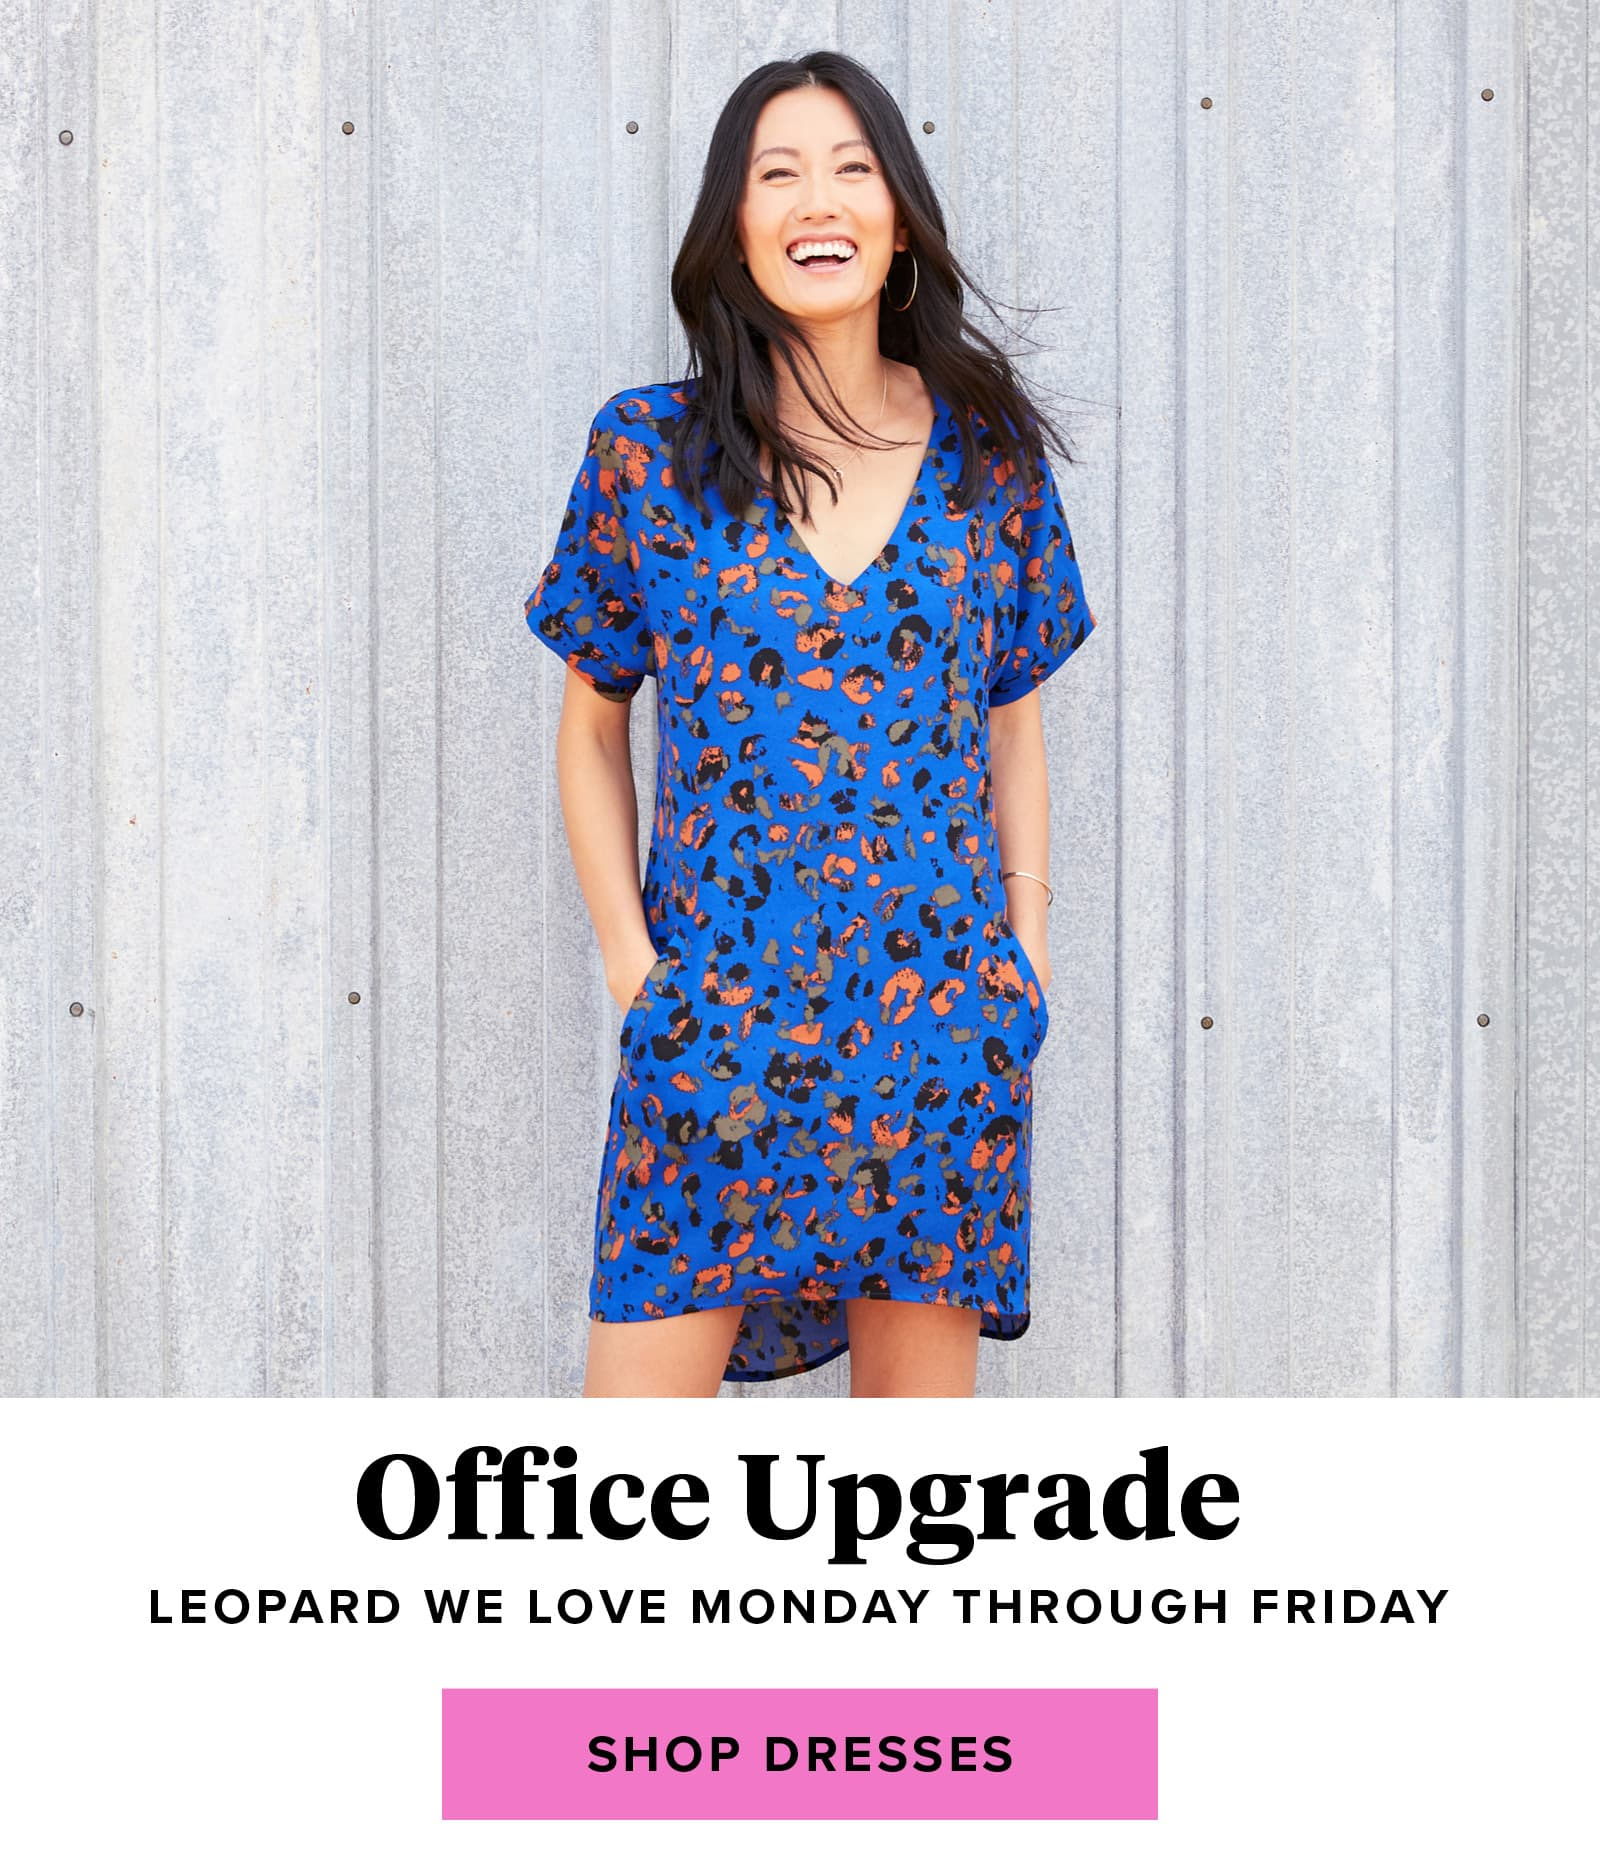 Office Upgrade: Leopard we love Monday through Friday - shop dresses